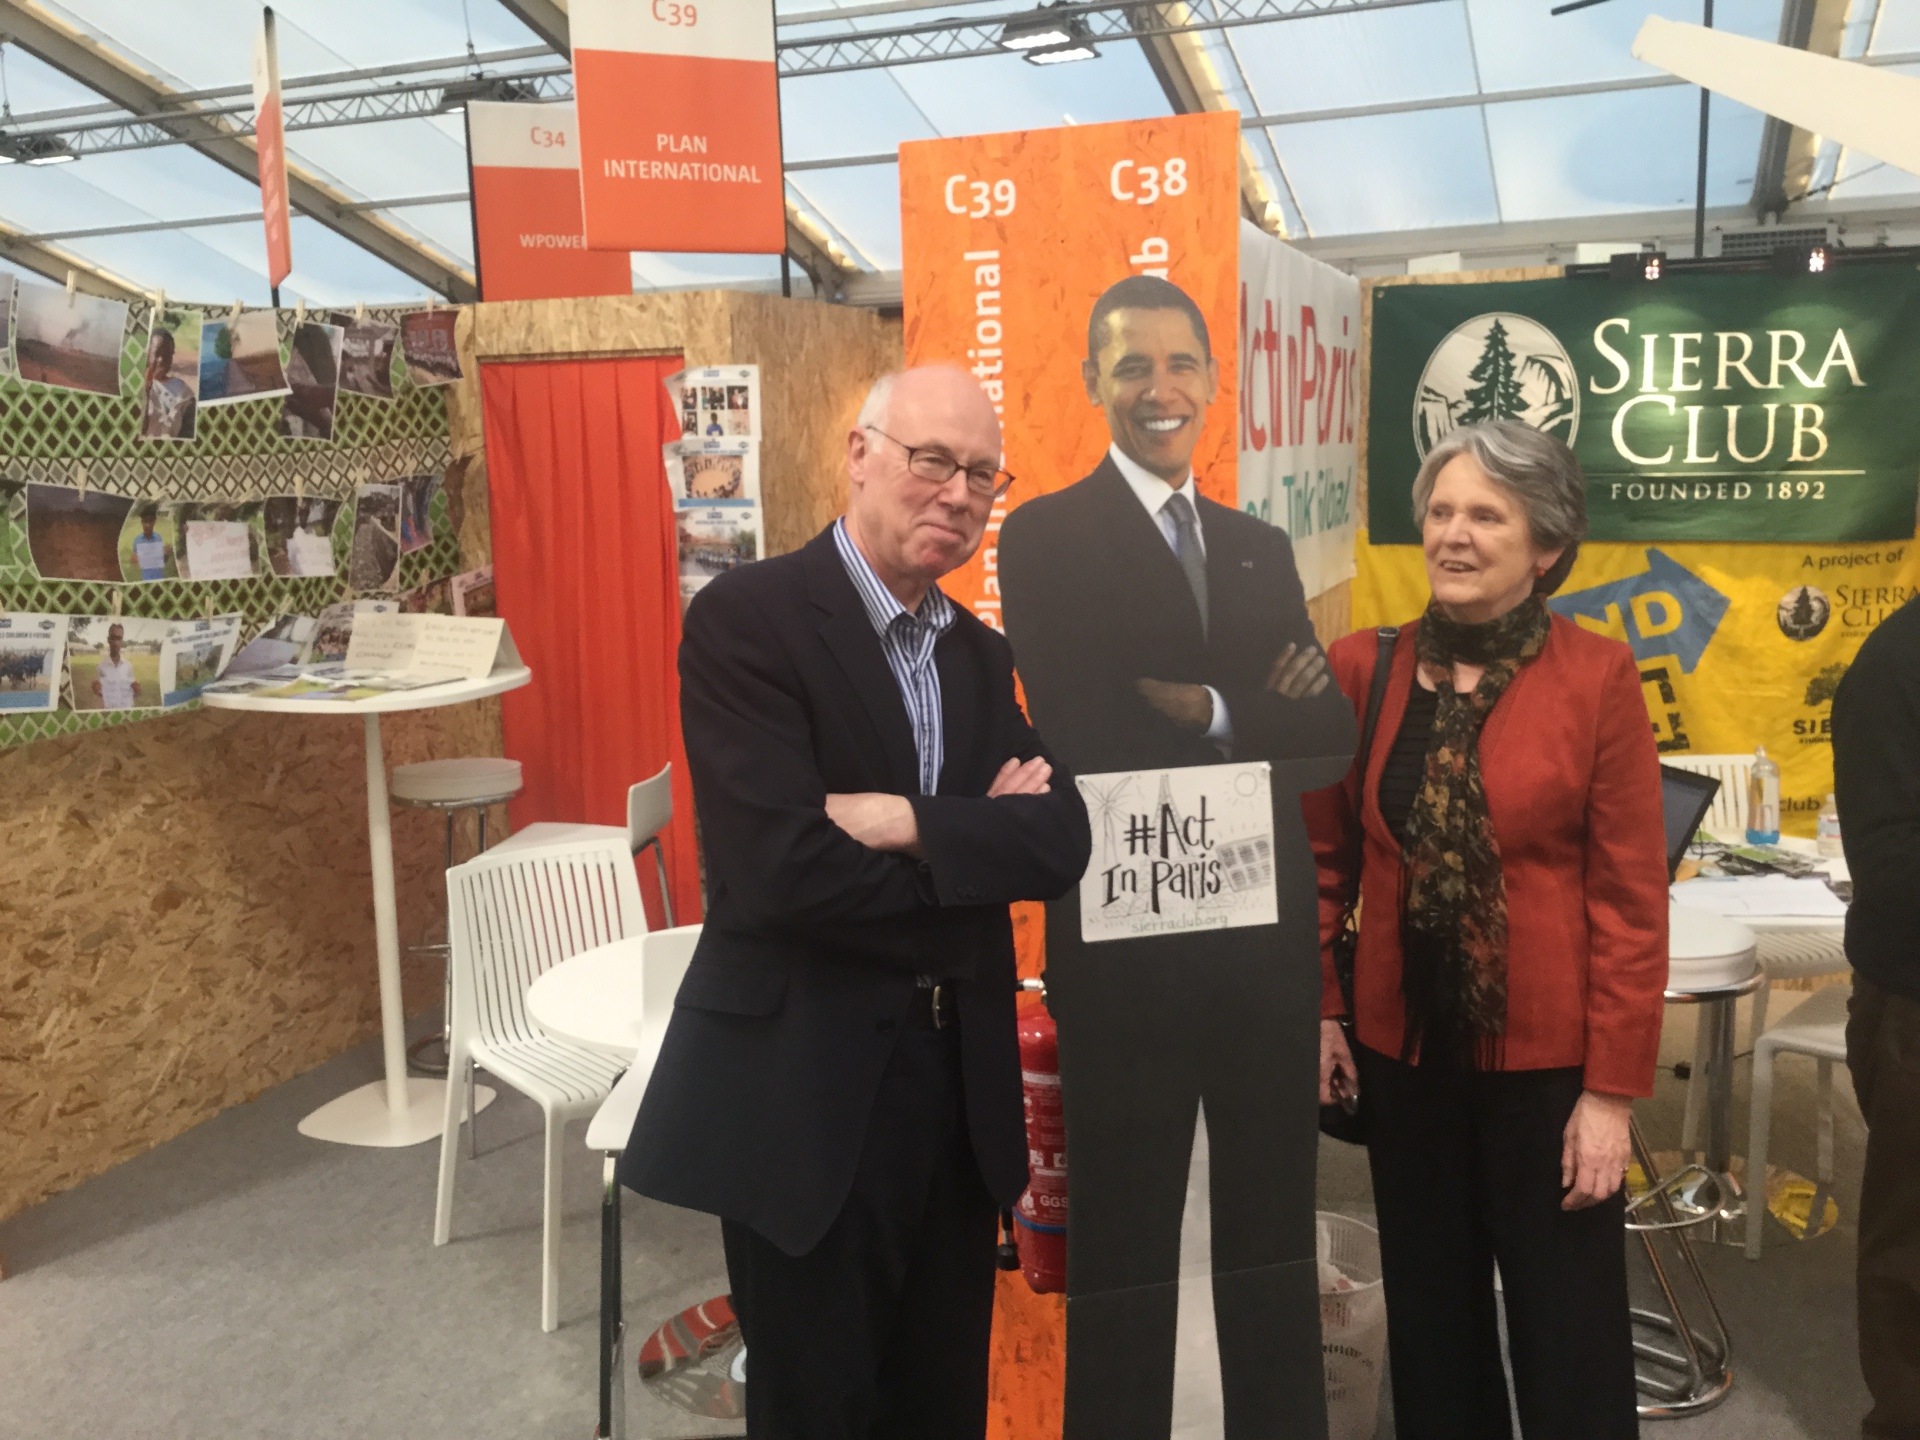 At COP21 climate change conference, Paris